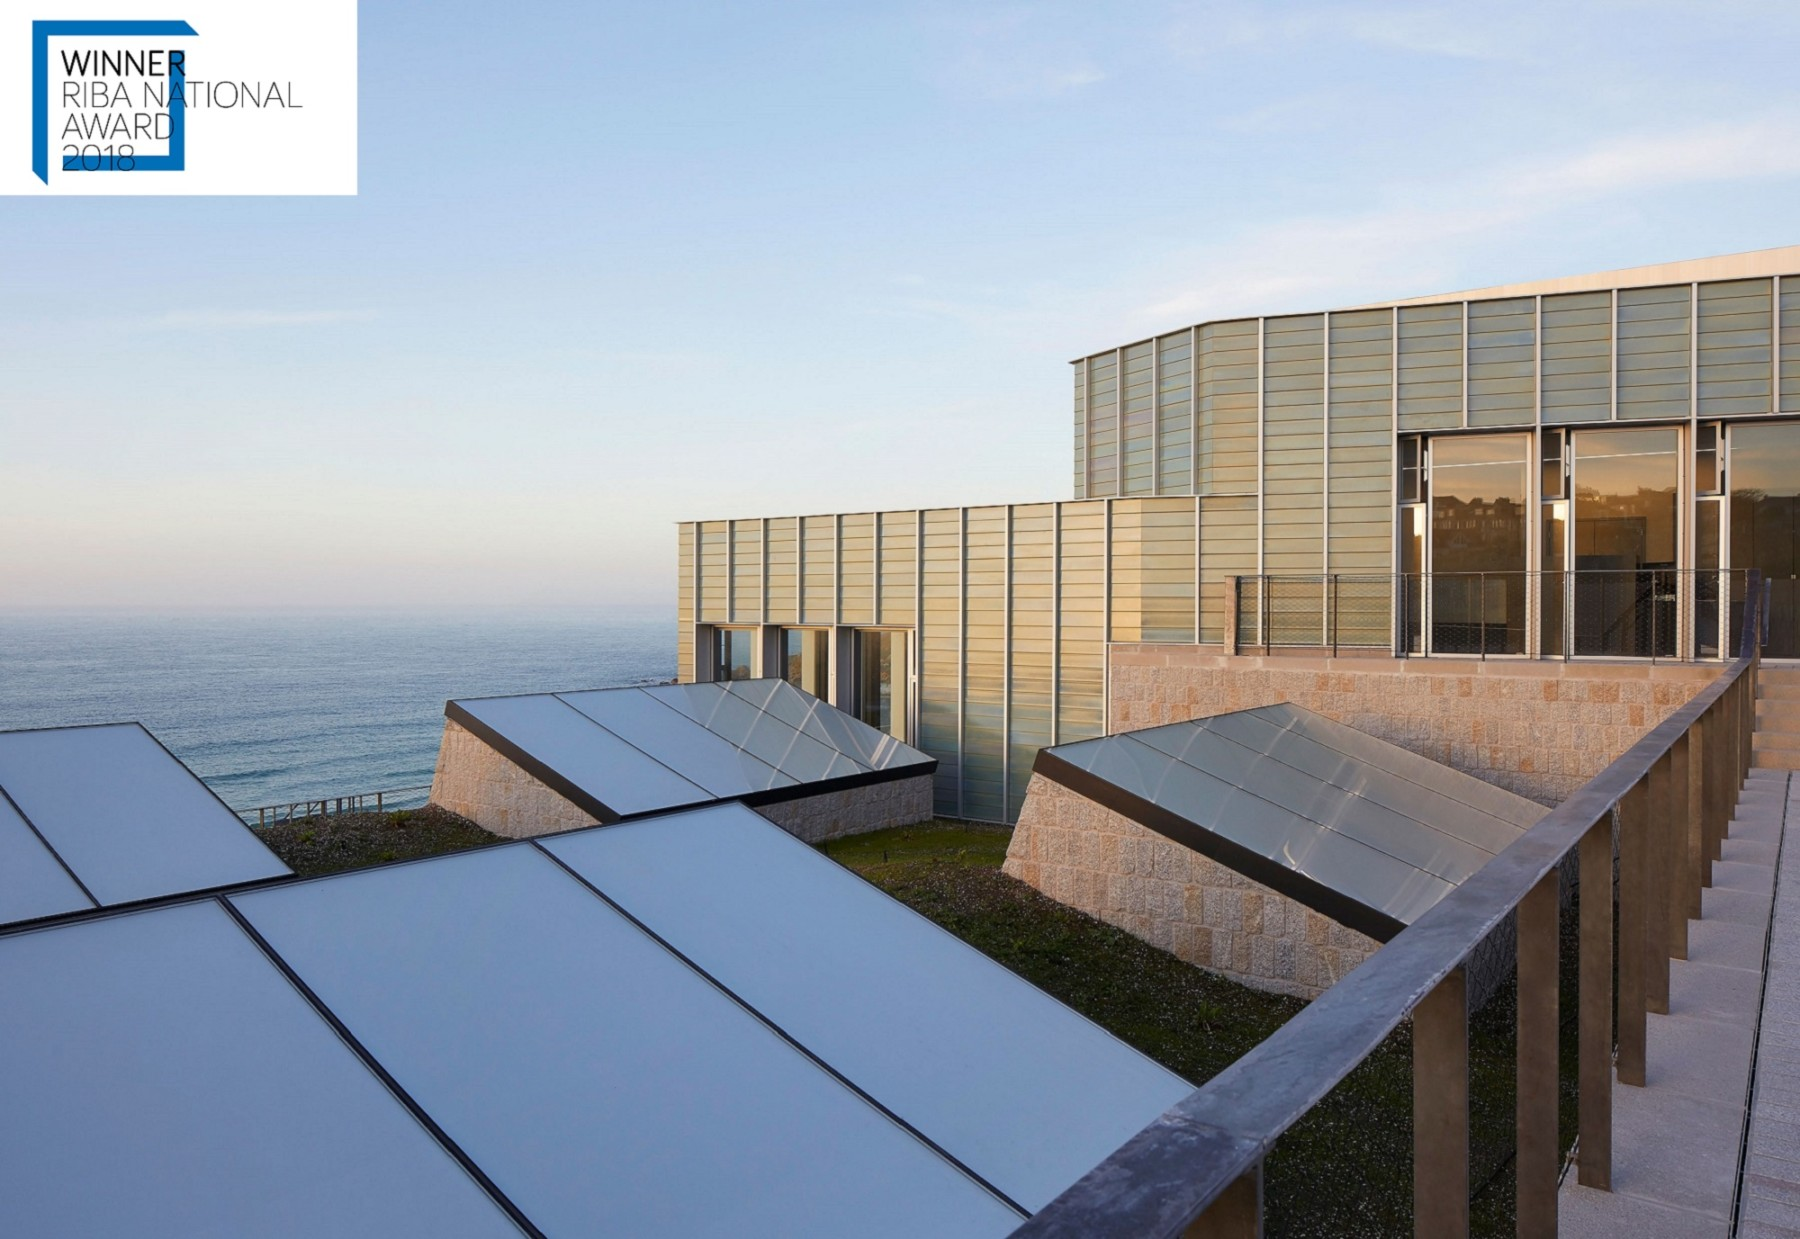 Jamie-Fobert-Architects Tate-St-Ives Cornwall Hufton+Crow faience rooflights RIBA Award Awards 2